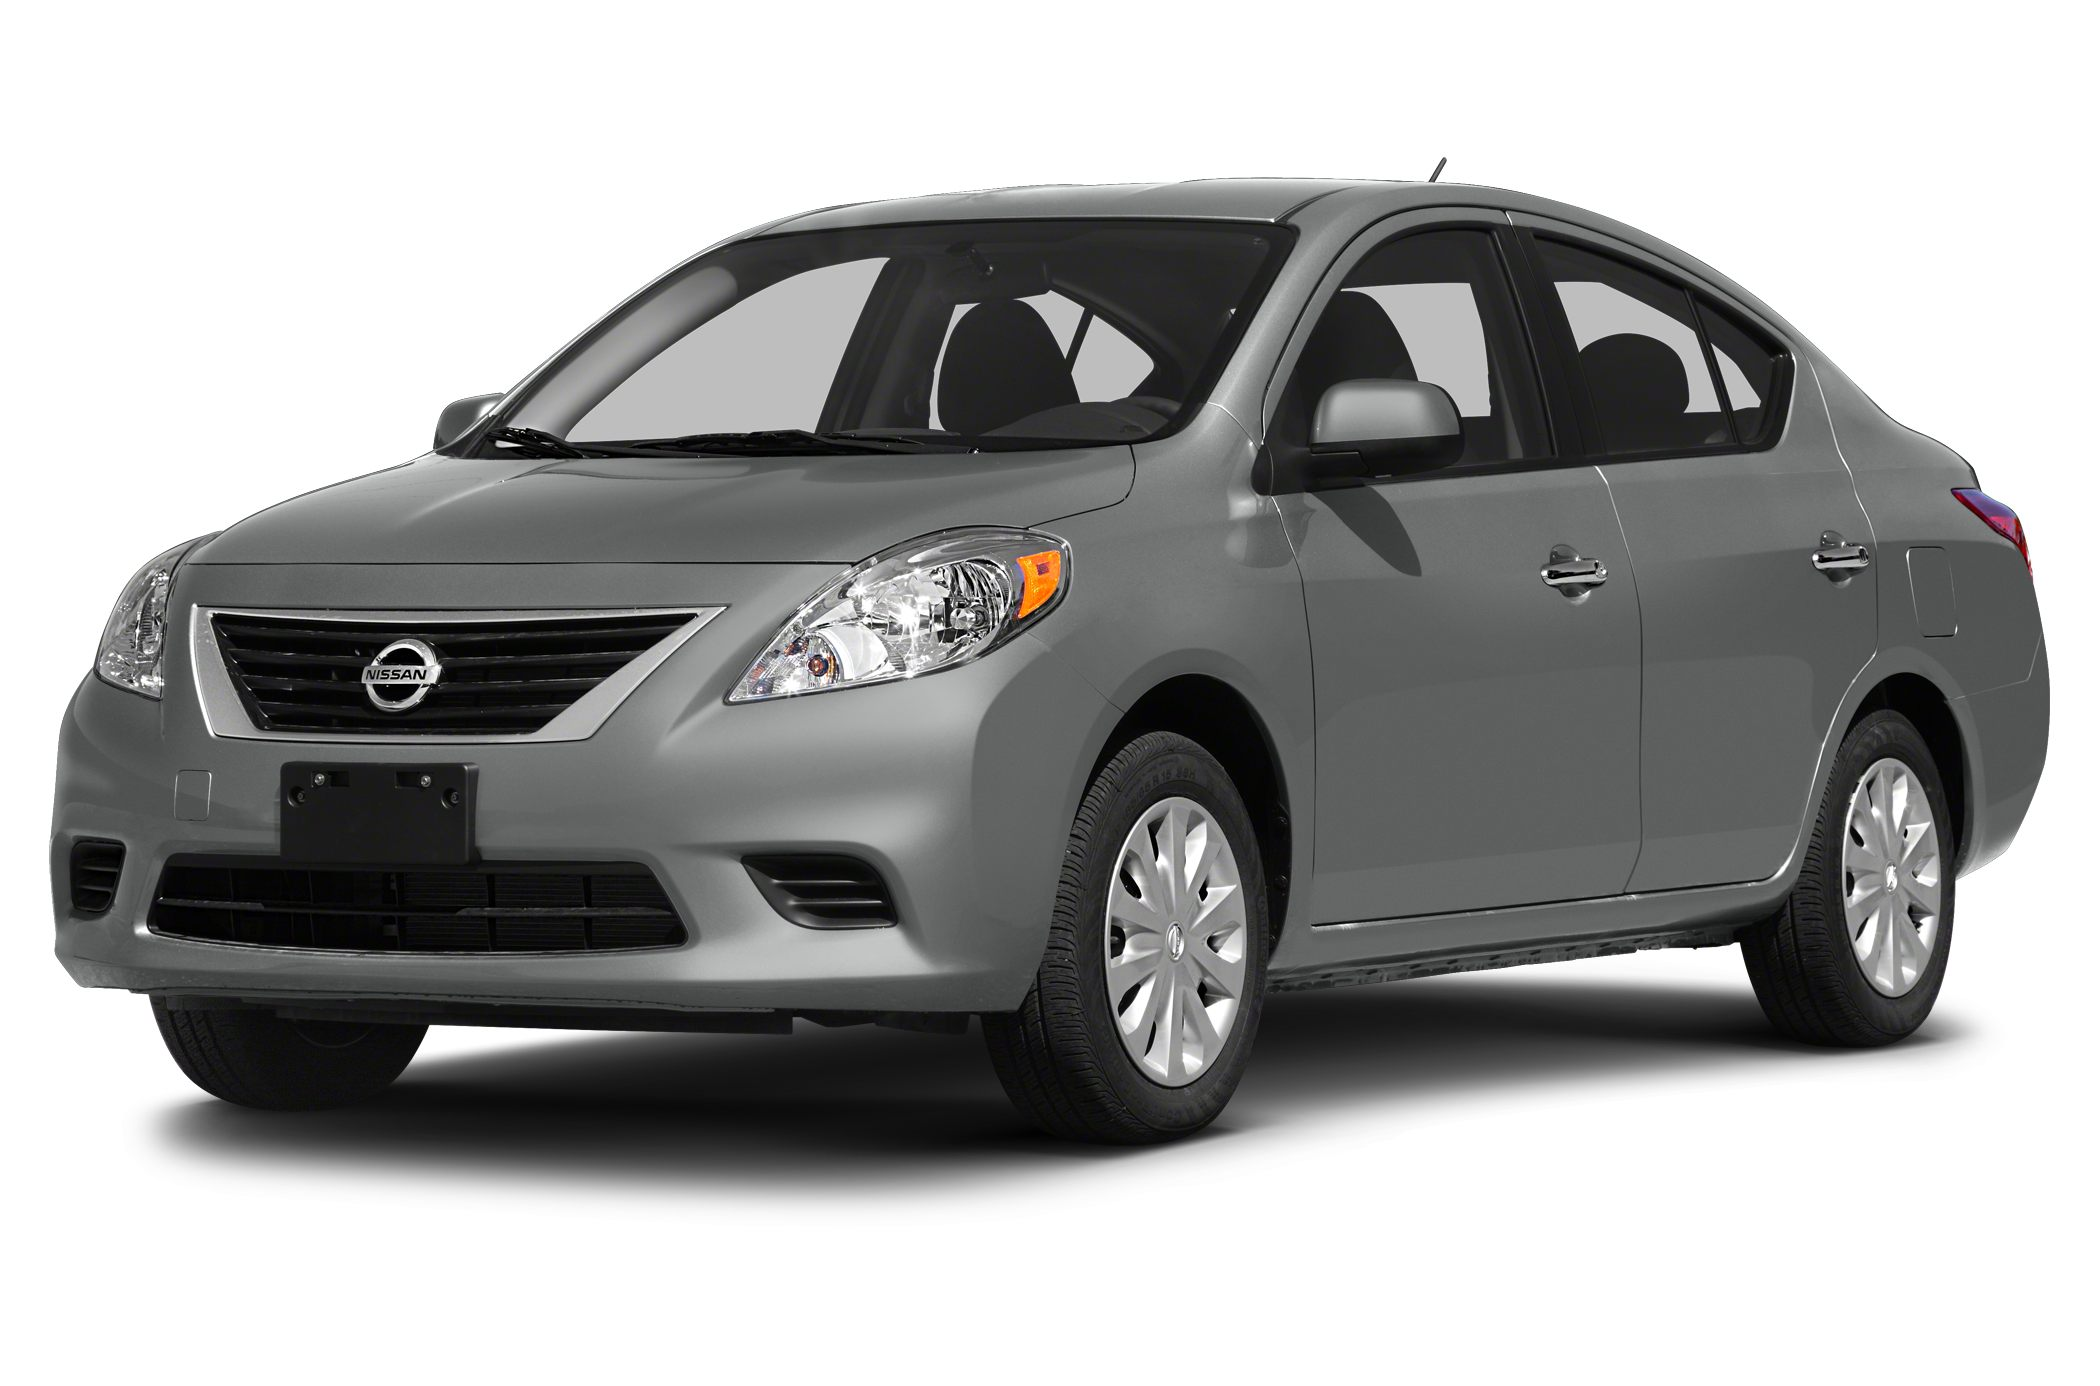 2014 Nissan Versa 1.6 S Sedan for sale in Pocatello for $13,575 with 10,423 miles.